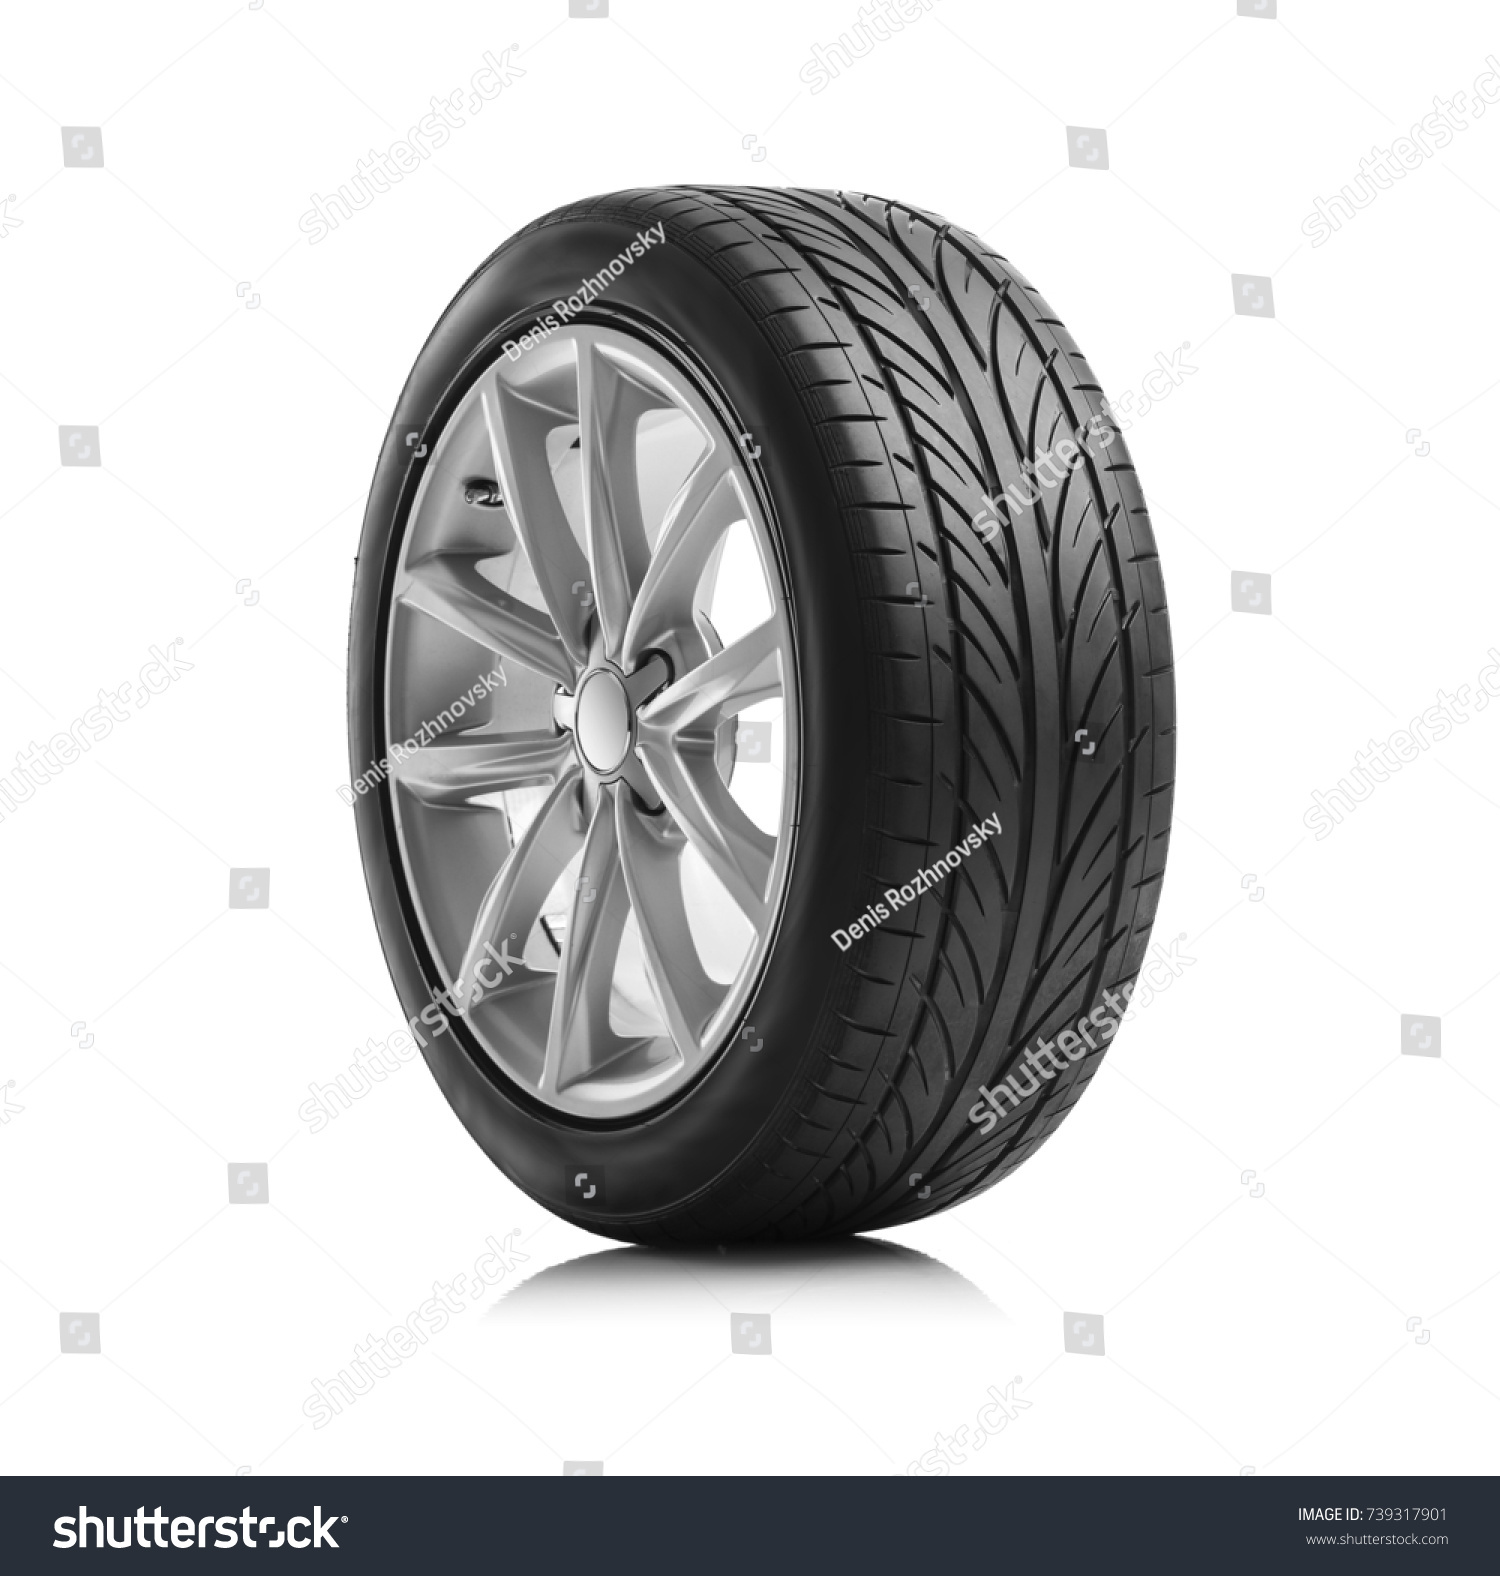 Car wheels isolated on a white background. #739317901